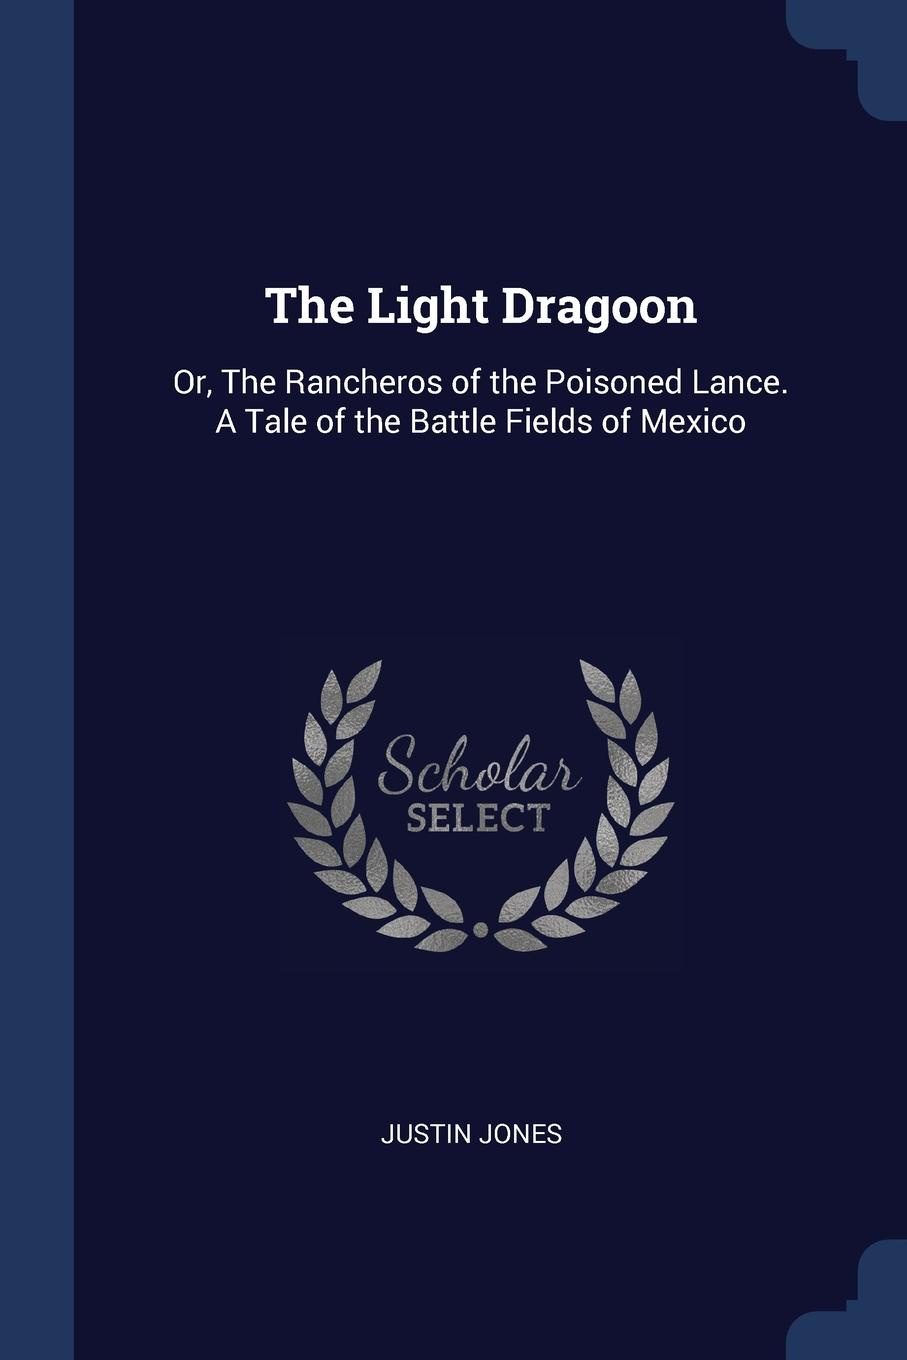 The Light Dragoon. Or, The Rancheros of the Poisoned Lance. A Tale of the Battle Fields of Mexico. Justin Jones